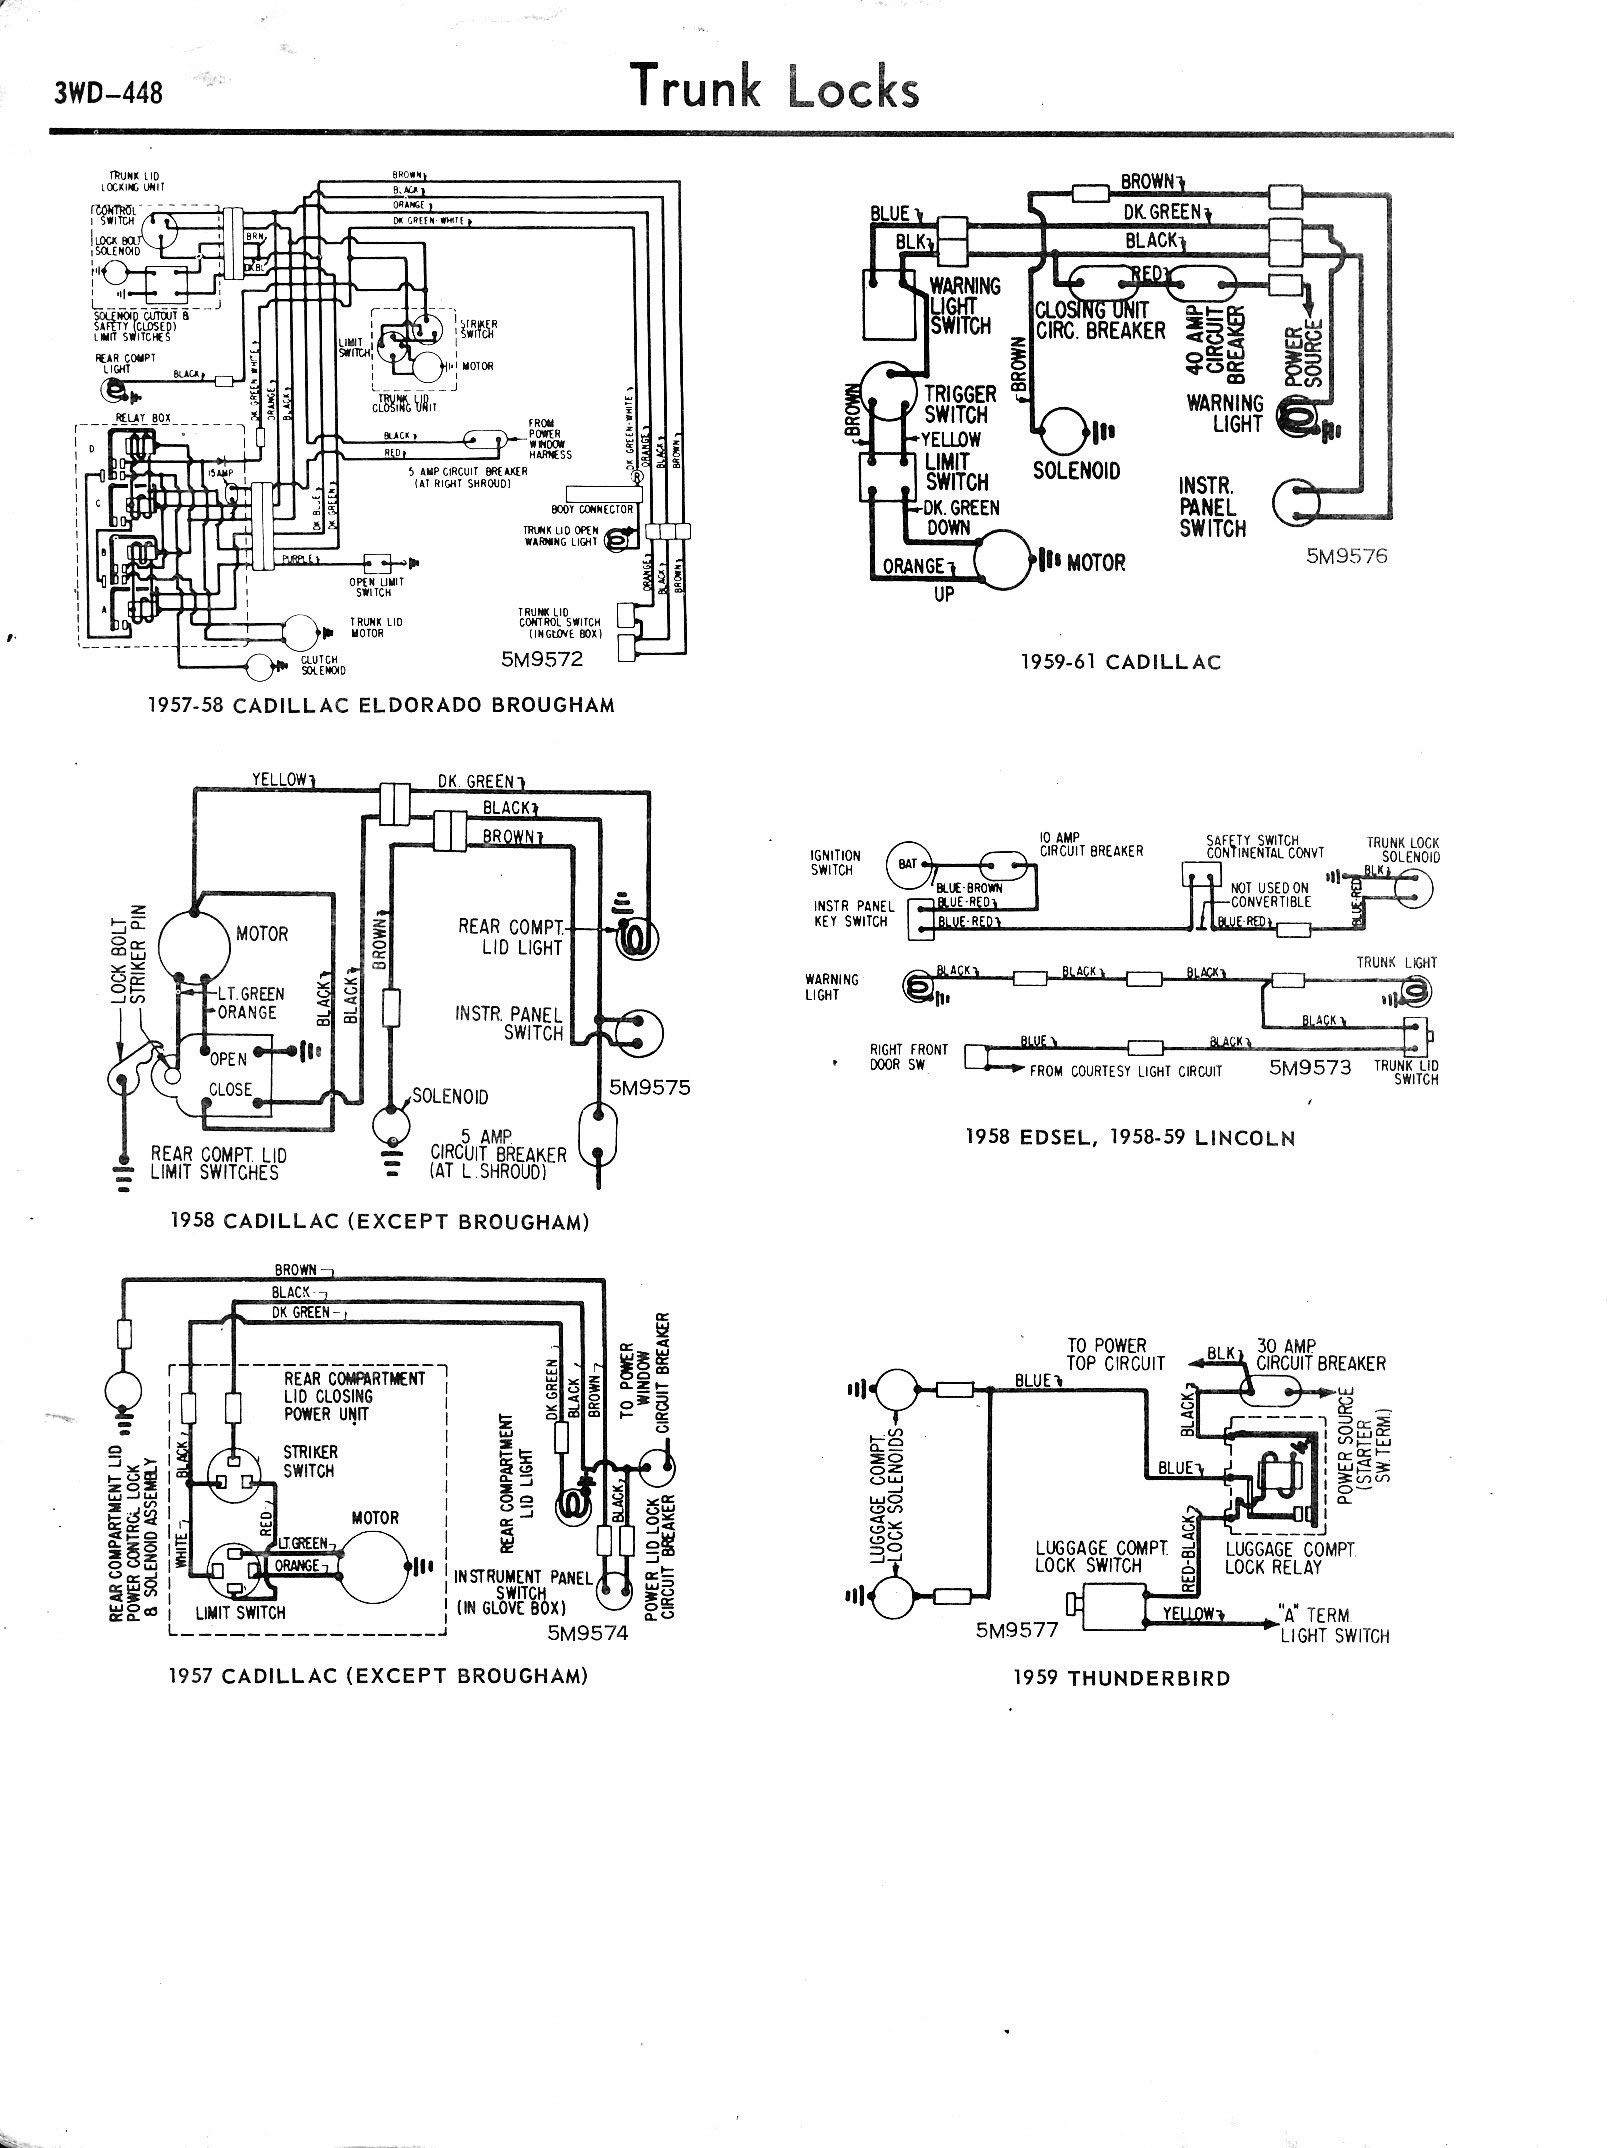 1958 Edsel Wiring Diagram Library Cadillac 1957 1965 Accessory Diagrams 3wd 448